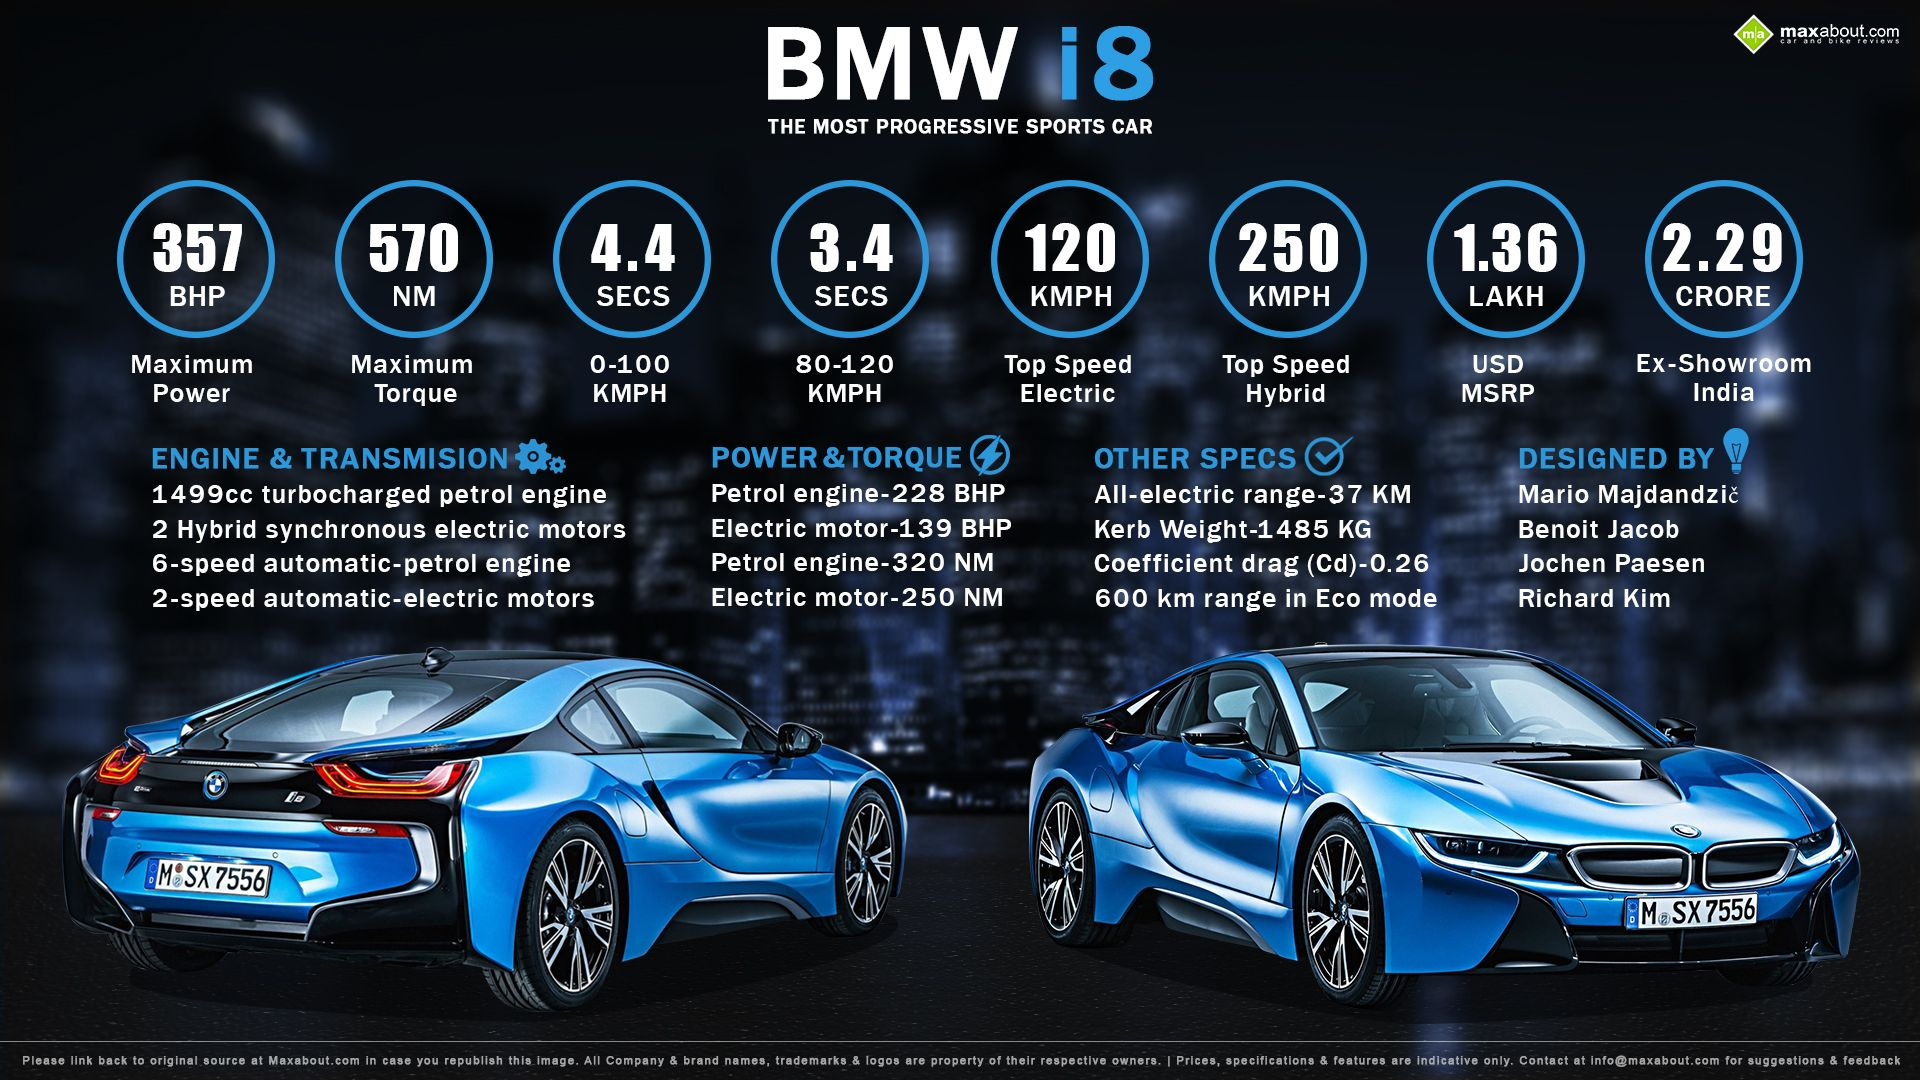 Bmw i8 hybrid sports car launched in india at inr 2 29 crore